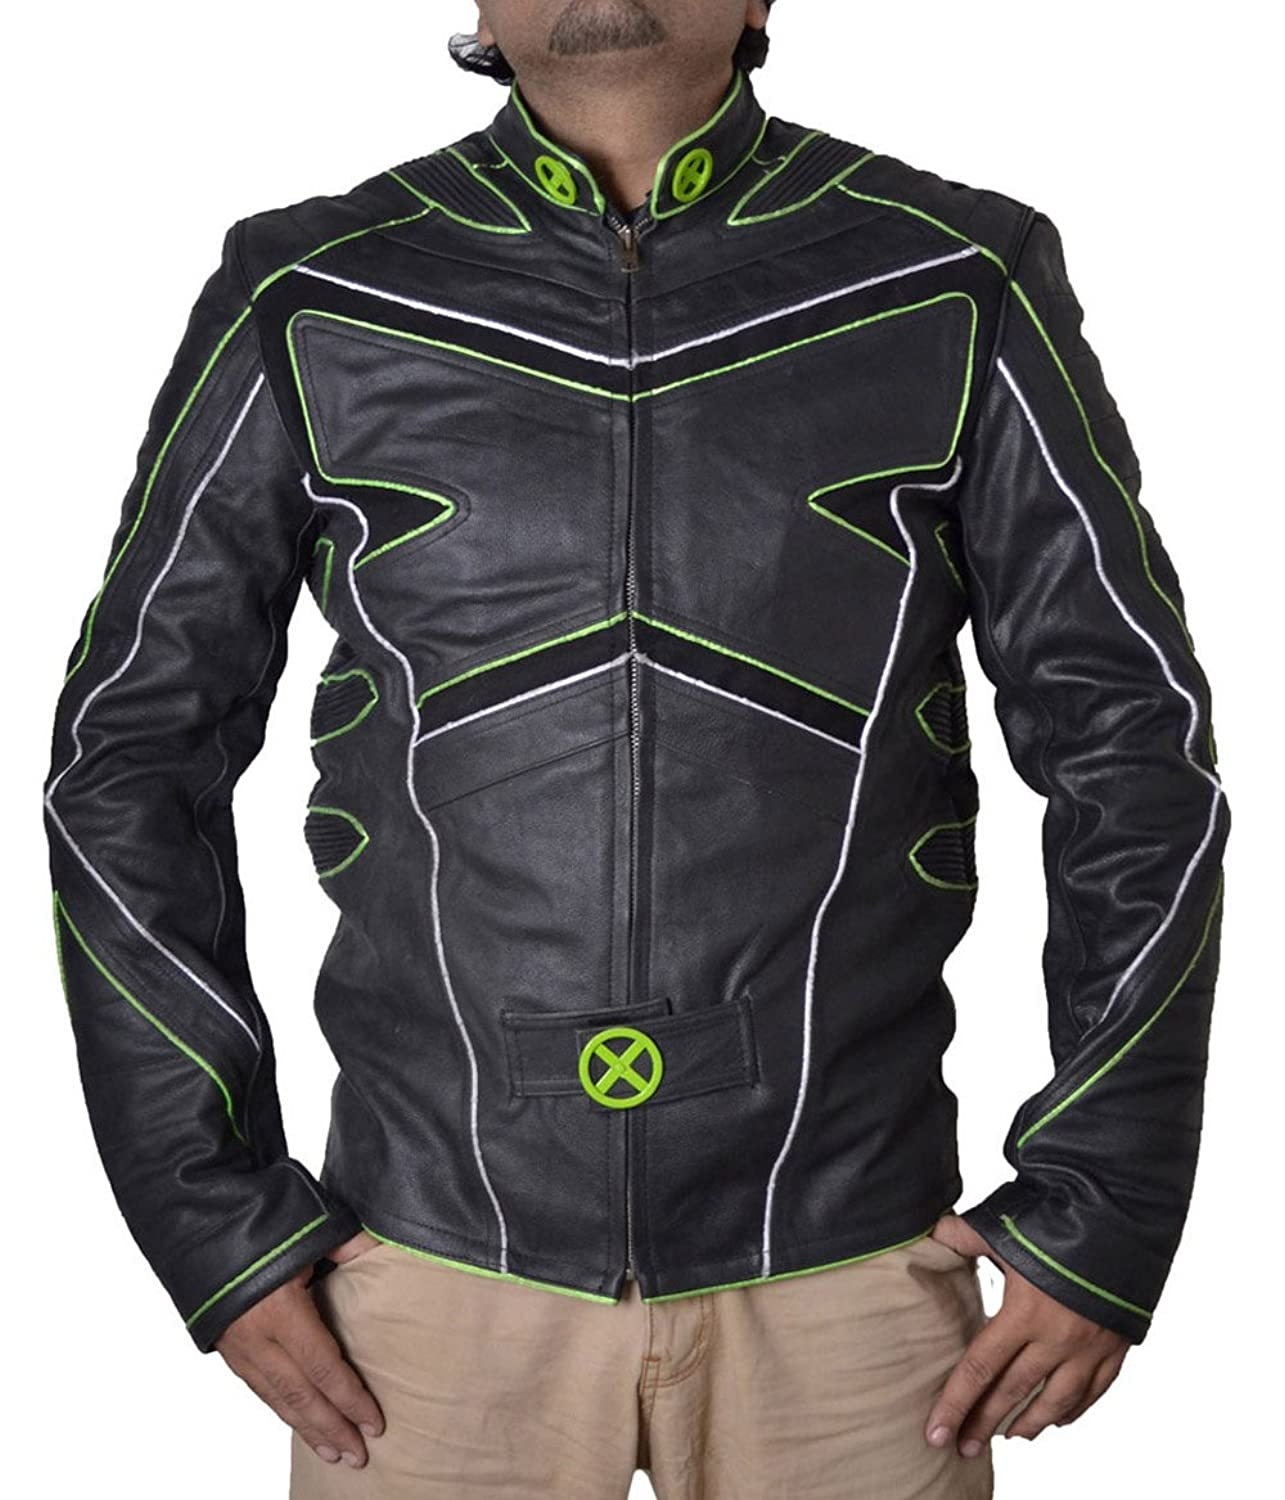 Xmen Wolverine Huge Jackman X Faux Leather Jacket with Green Pipen